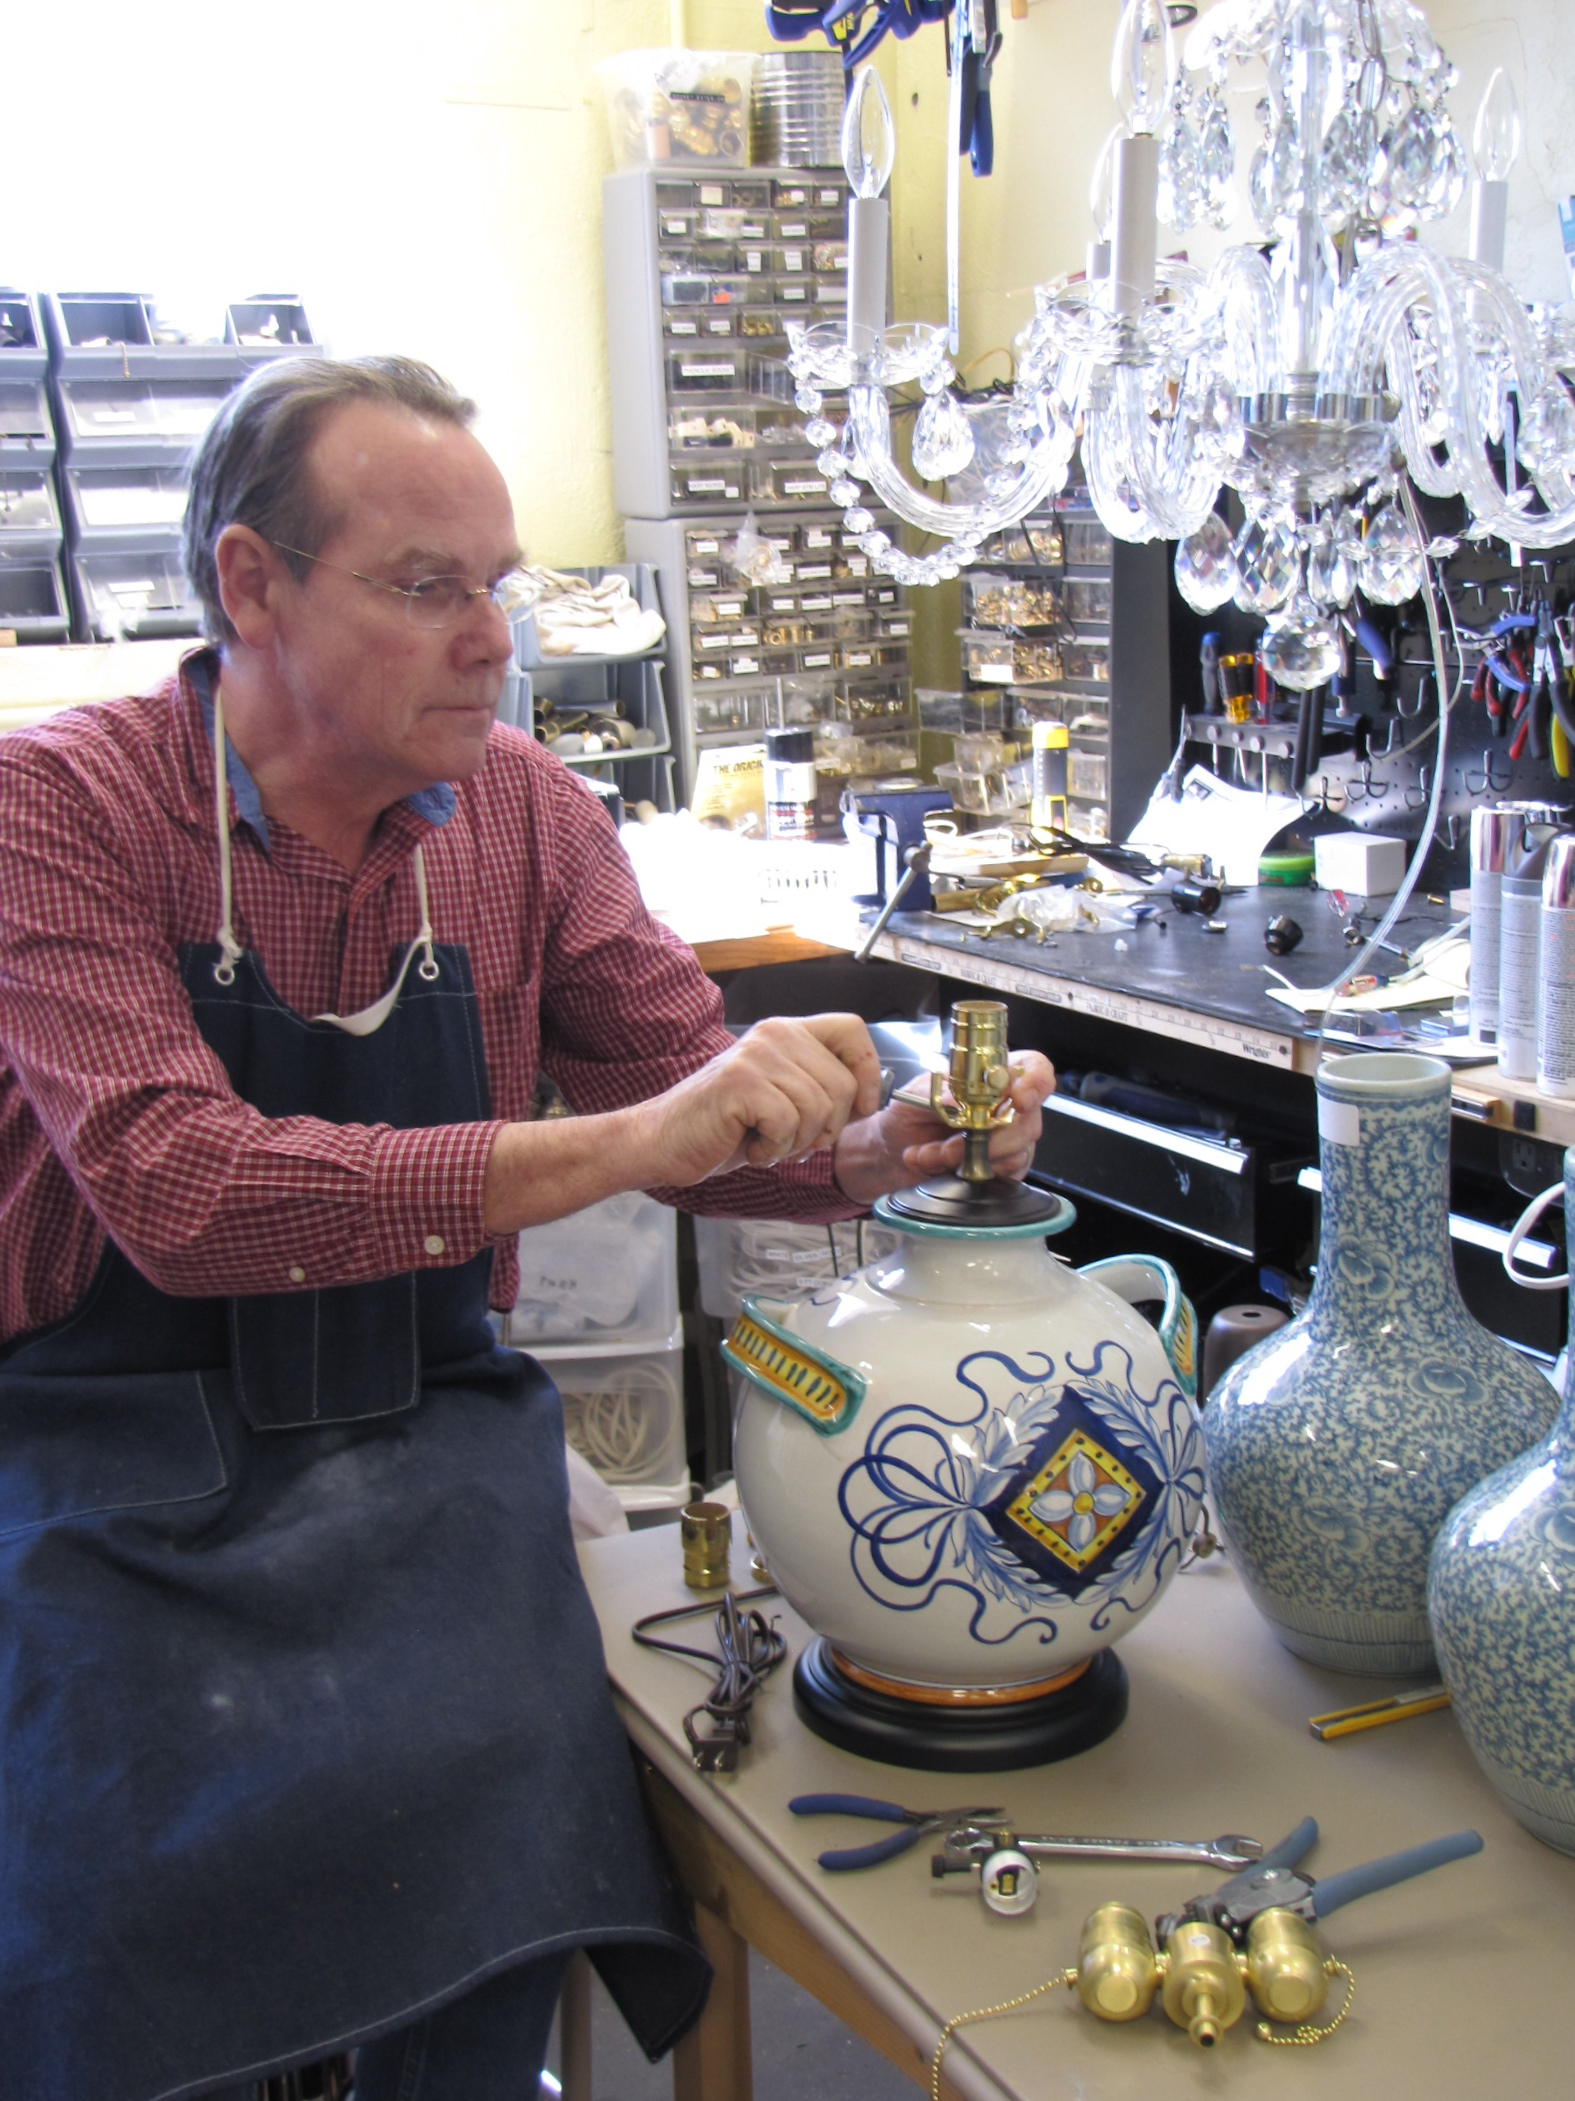 Mr. Holladay at his work bench making lamps from vases.